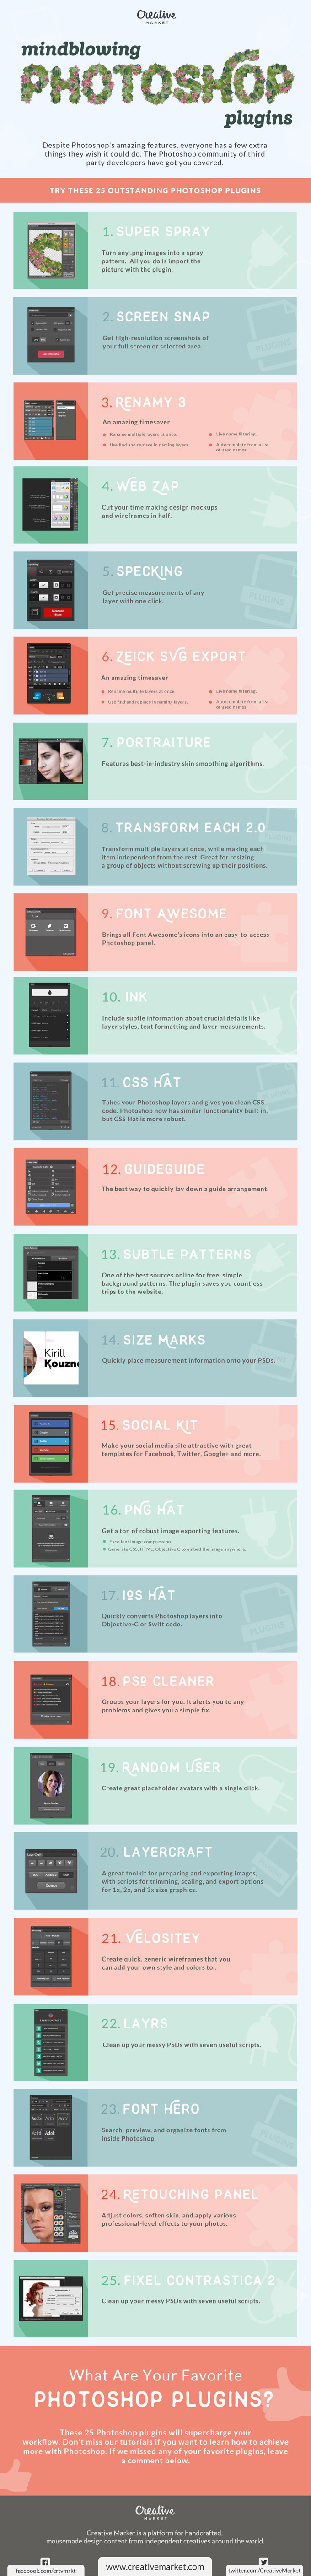 25-Photoshop-Plugins-Infographic